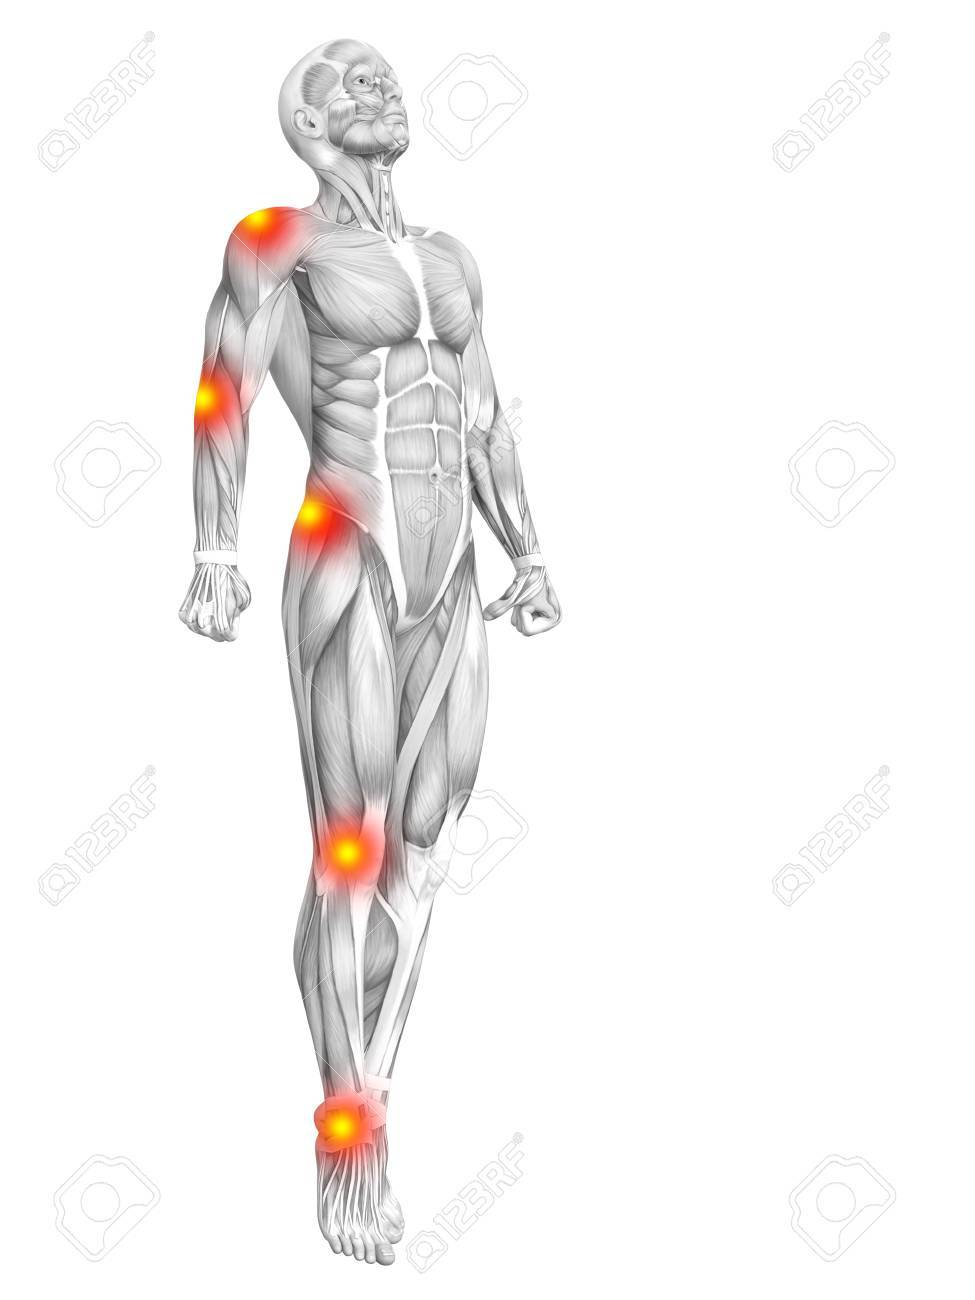 Conceptual Human Muscle Anatomy With Red And Yellow Hot Spot.. Stock ...